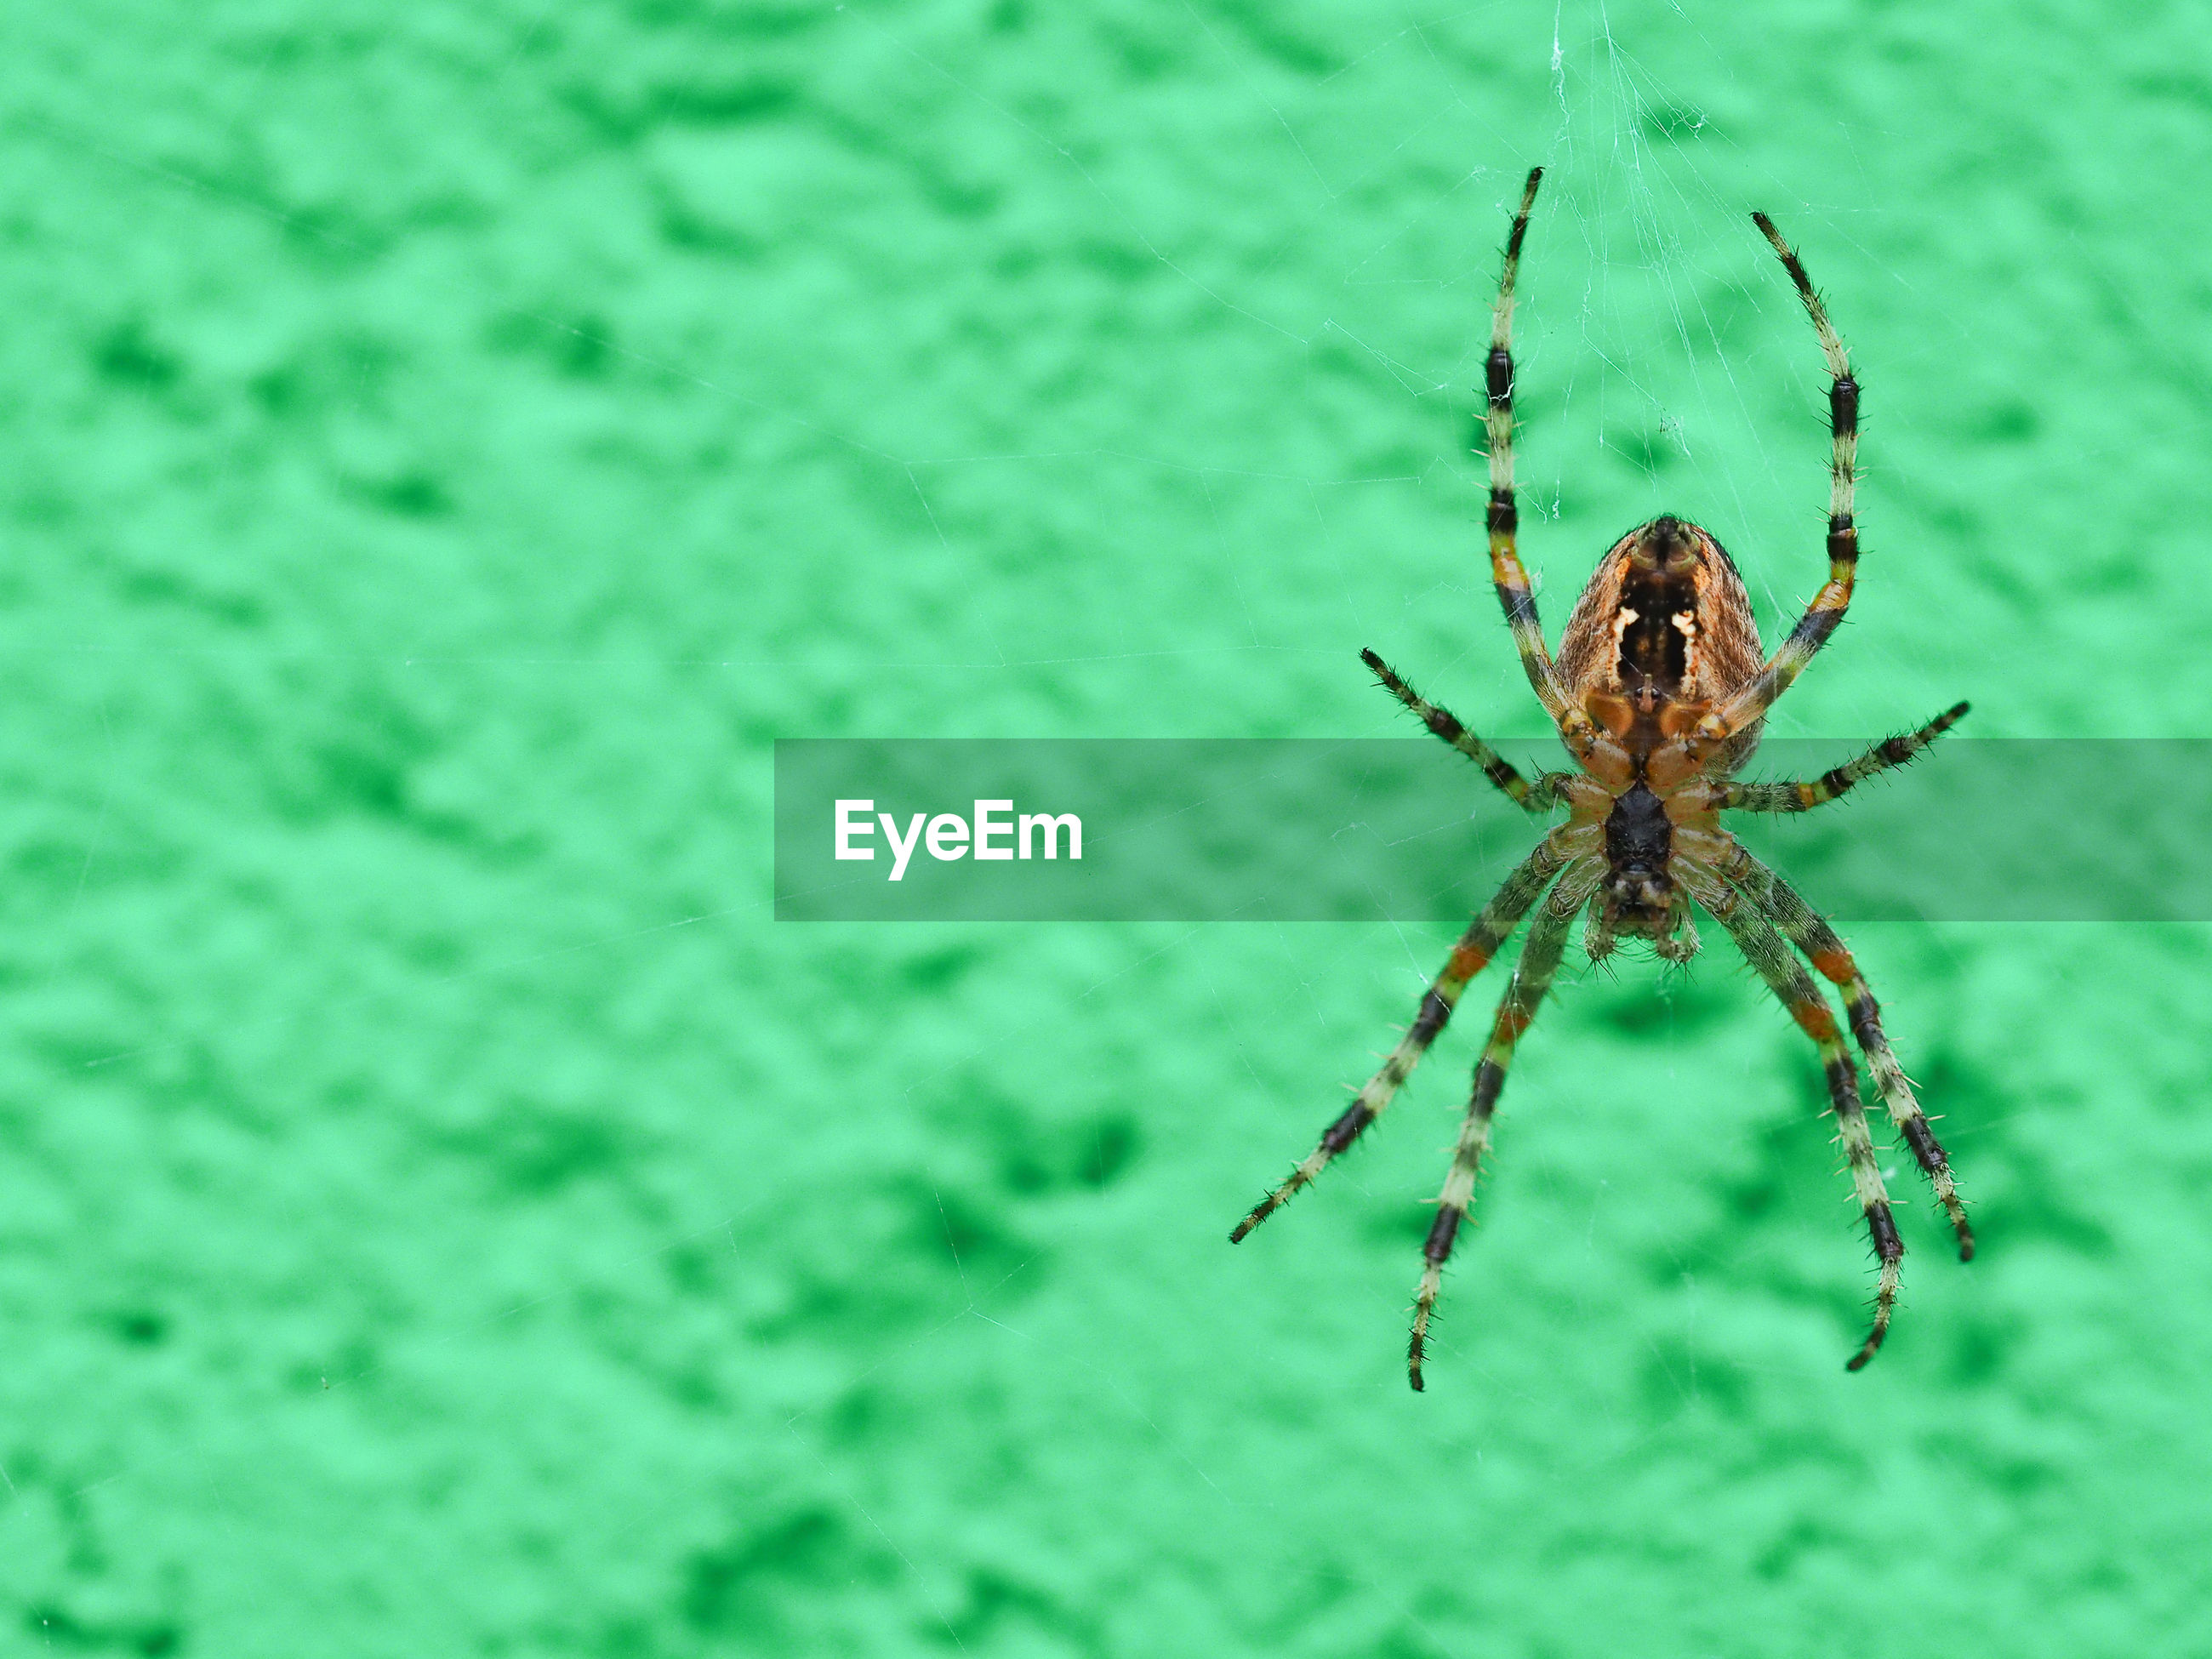 Close-up of spider on green surface